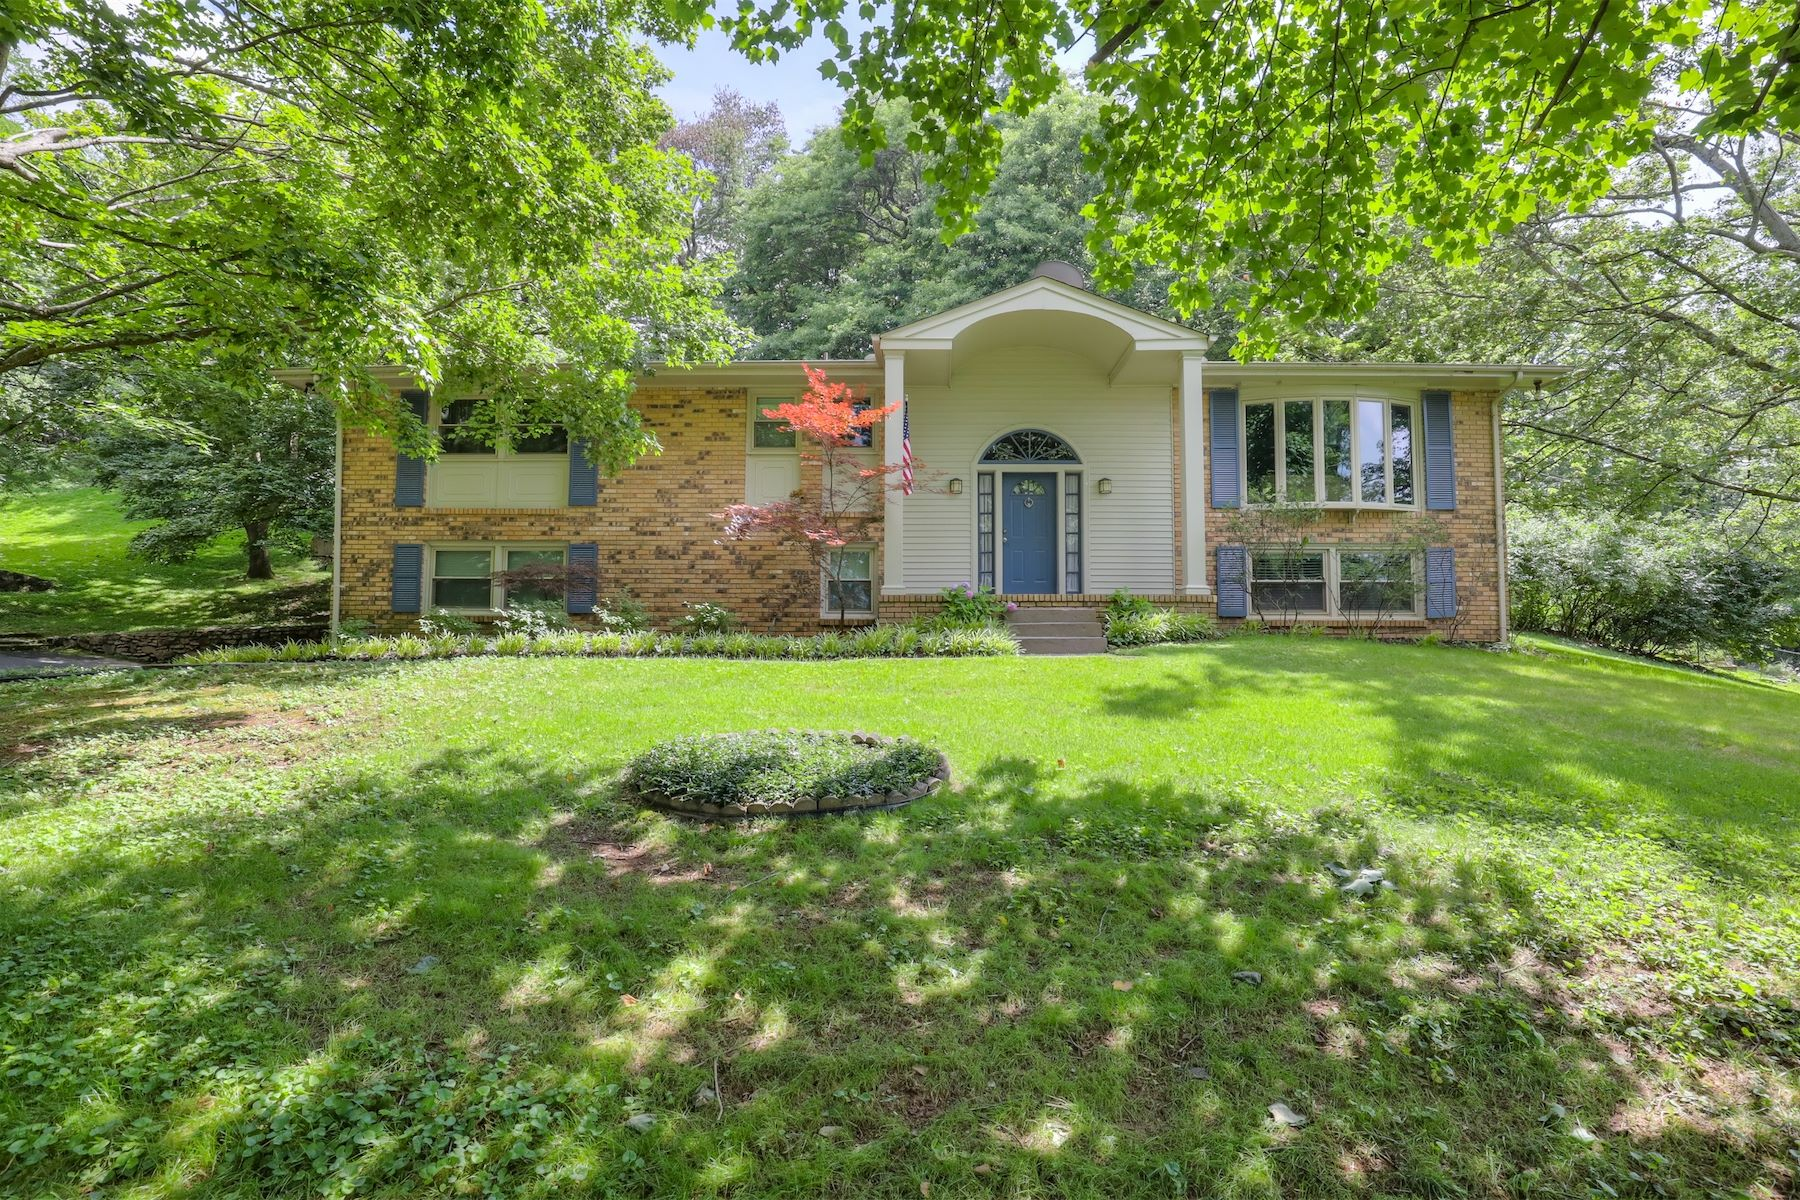 Single Family Home for Sale at Traditional Brick in Brentwood 5103 Beauregard Lane Brentwood, Tennessee, 37027 United States